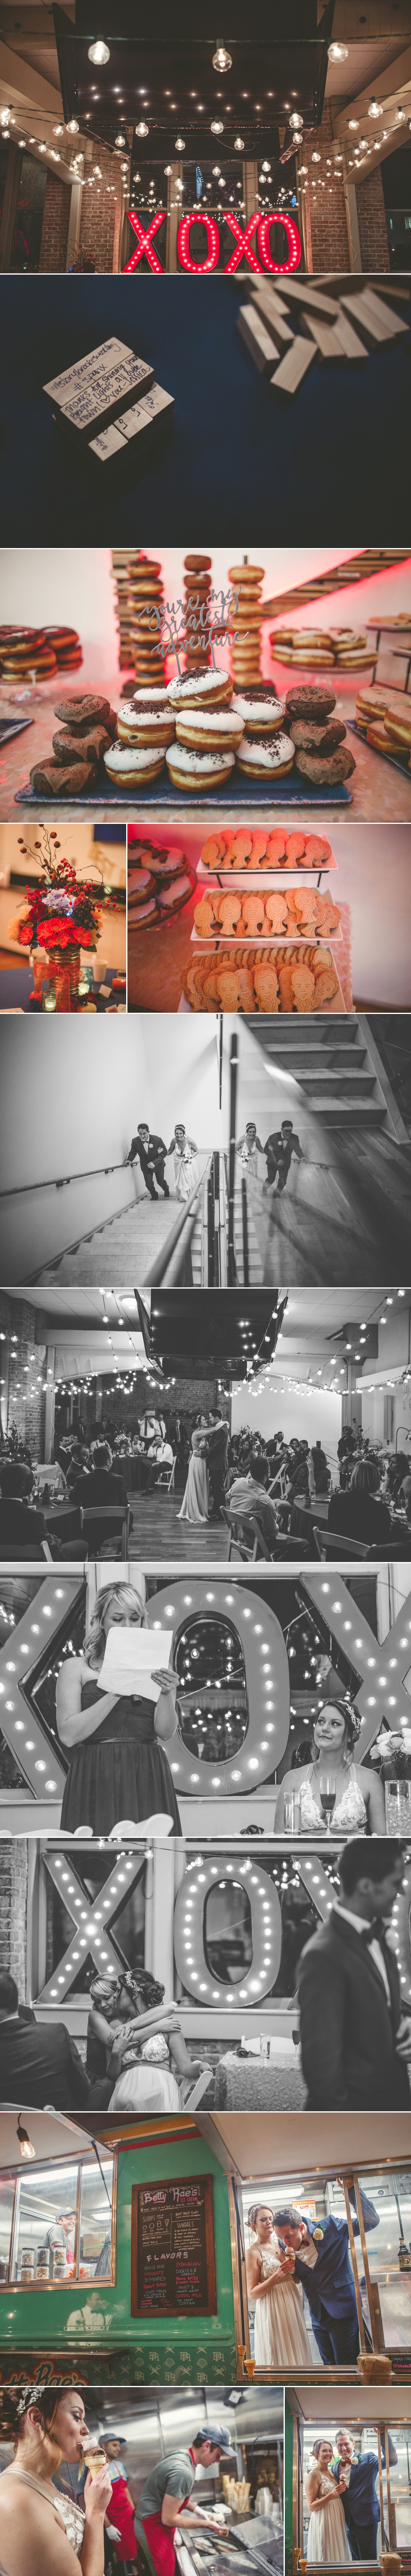 jason_domingues_photography_best_kansas_city_wedding_photographer_kc_weddings_big_brothers_big_sisters_0003.JPG